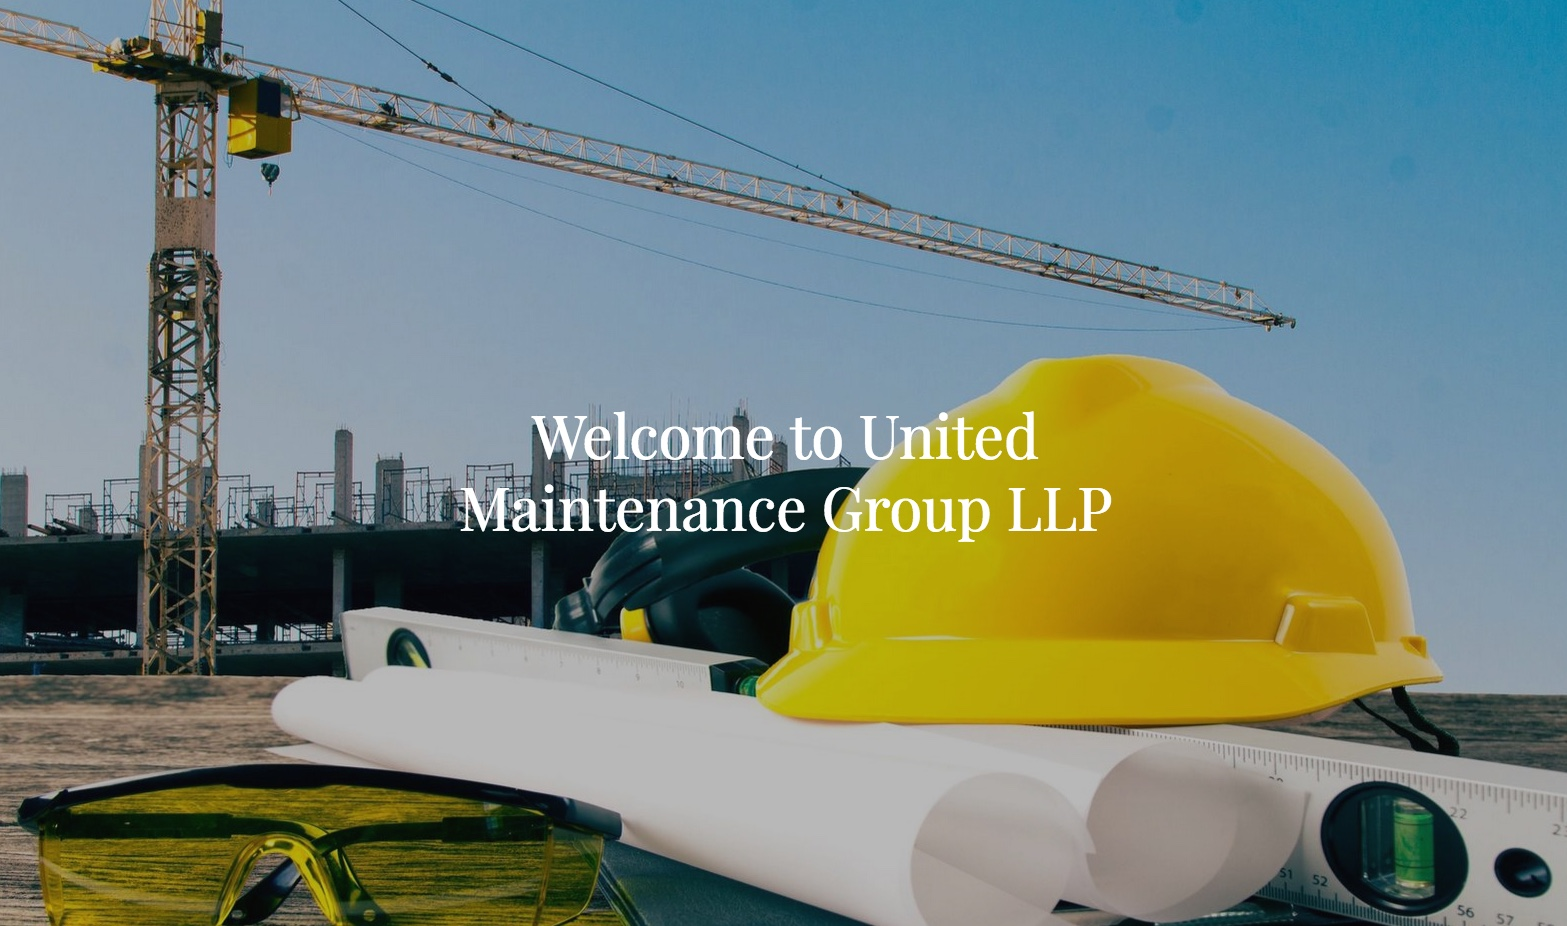 United Maintenance Group, LLP